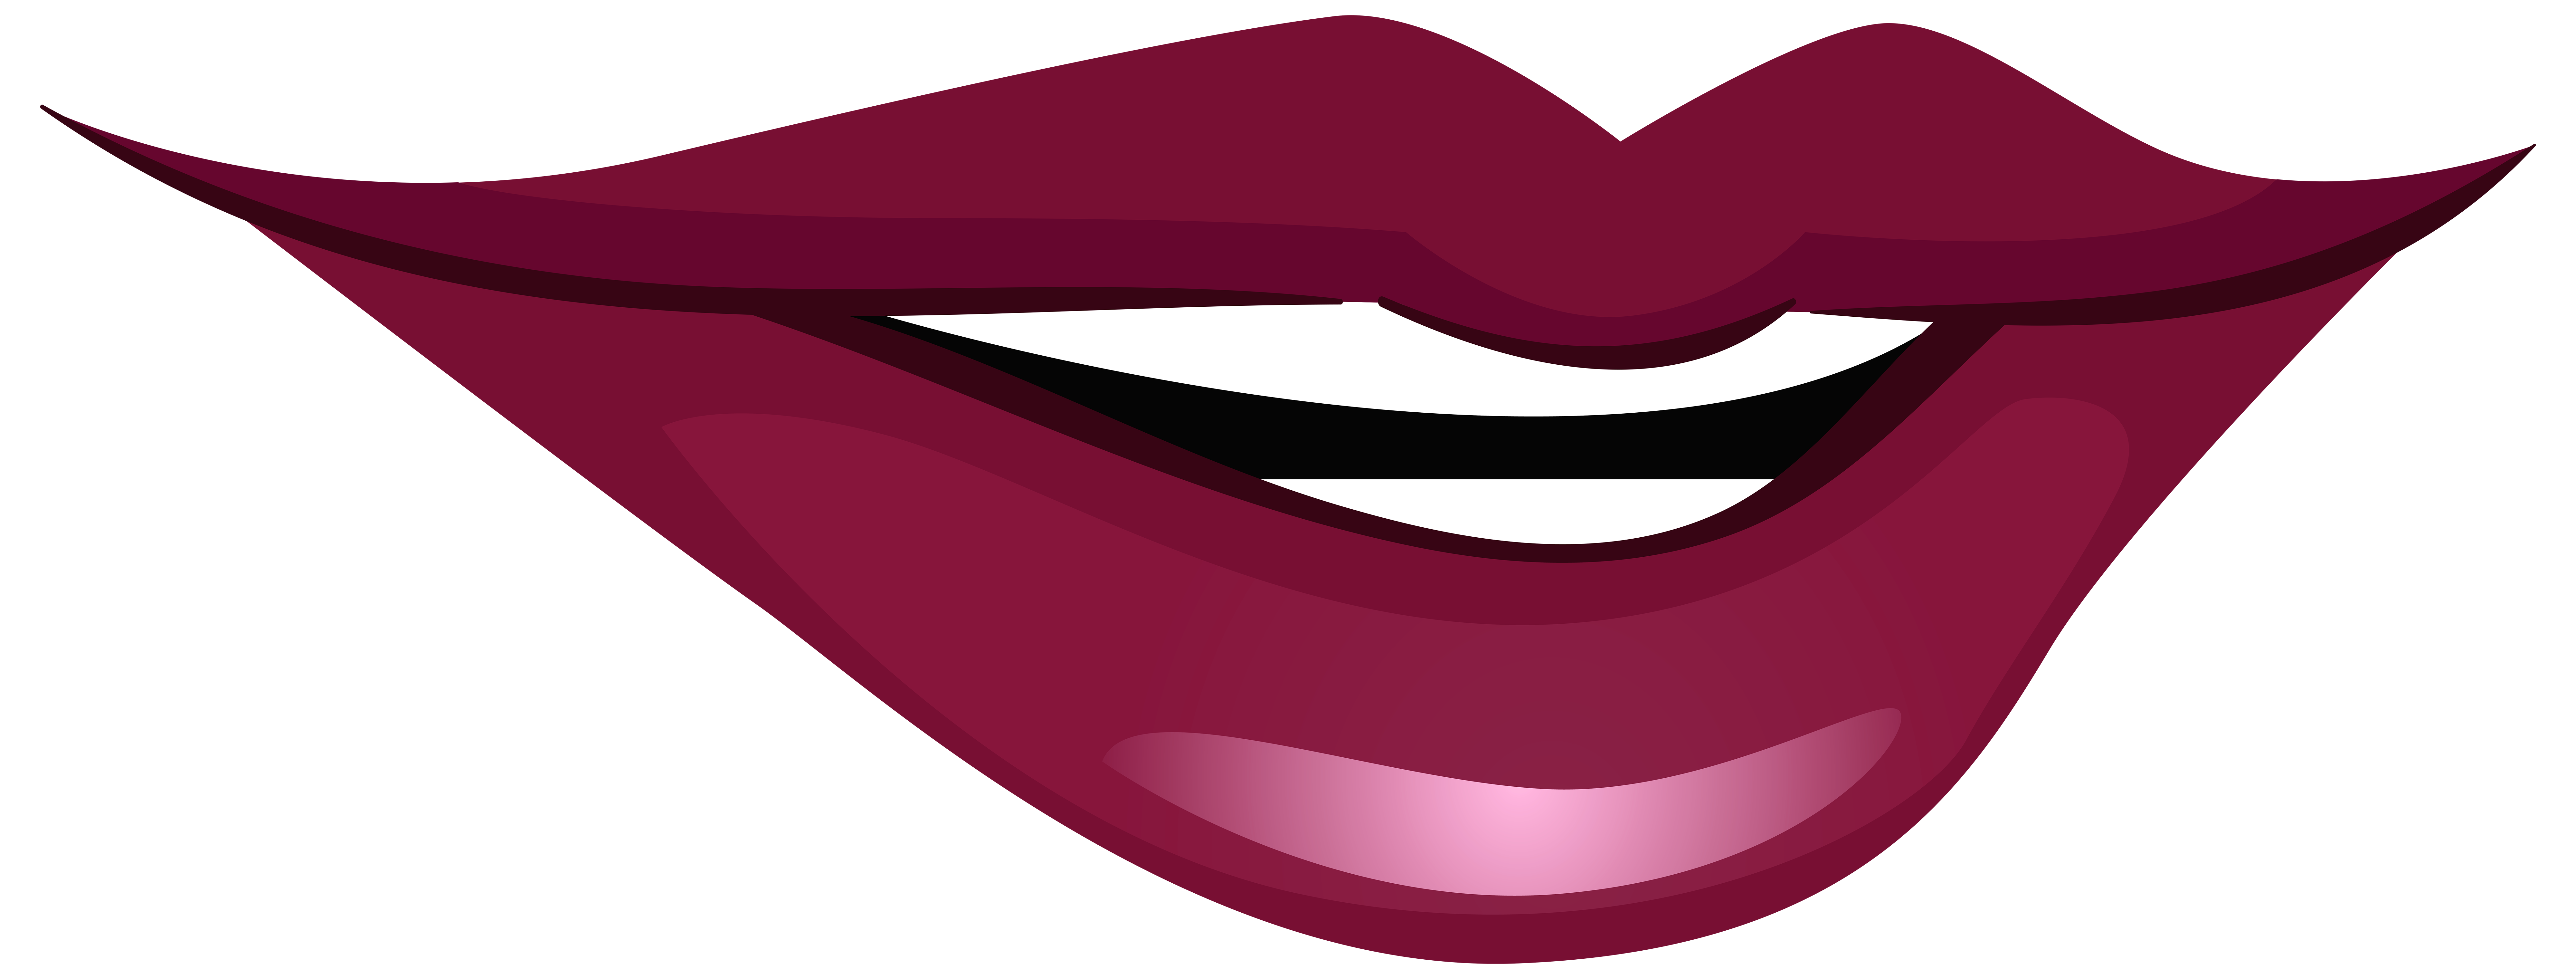 royalty free library Mouth png clip art. Smiling clipart red